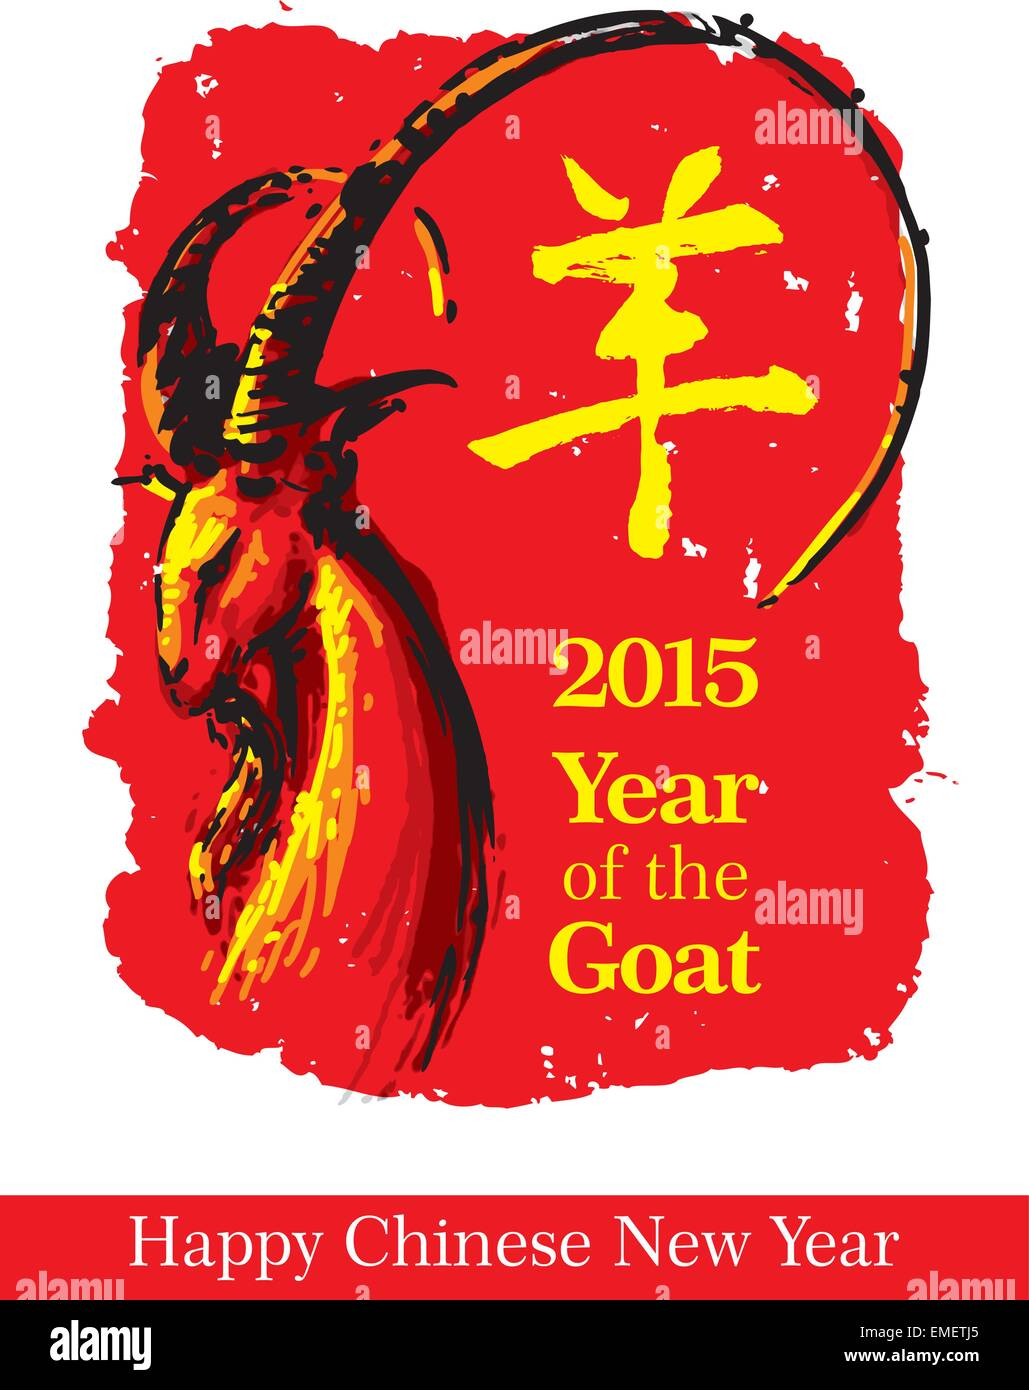 Symbol n Goat - 2015 Year of the Goat Red - Stock Image